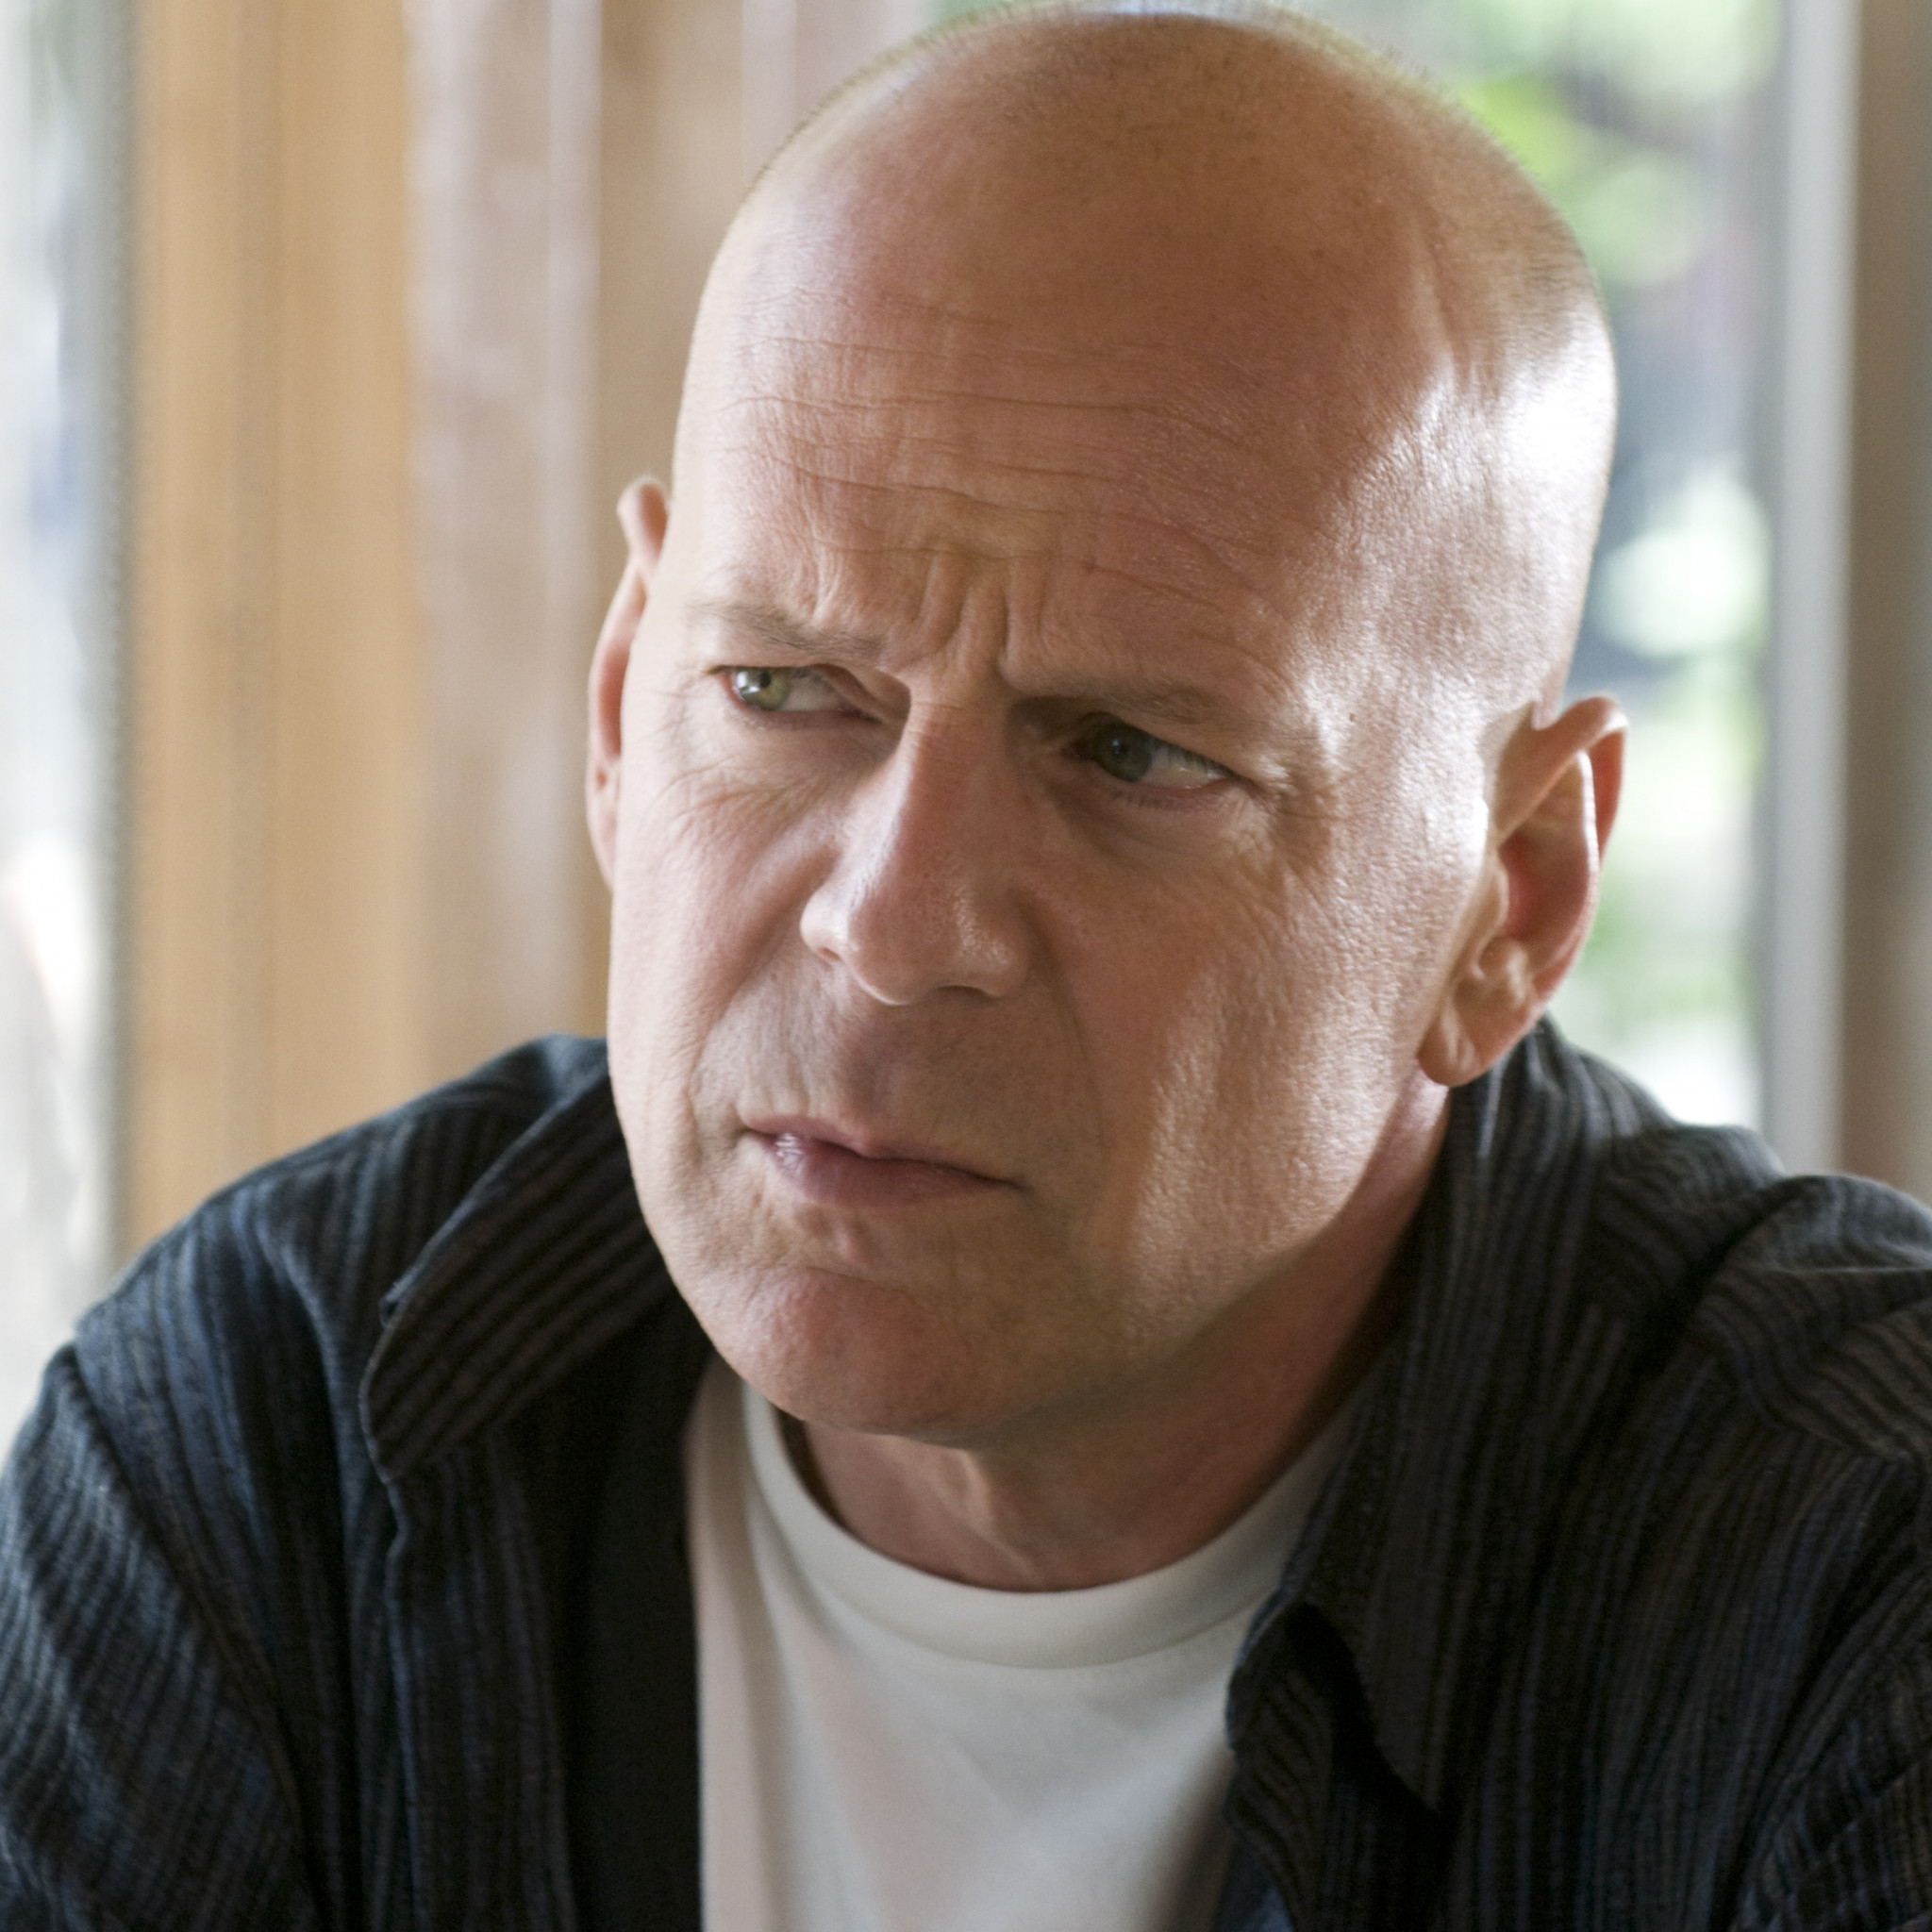 Bruce Willis Wallpapers (64+ images)